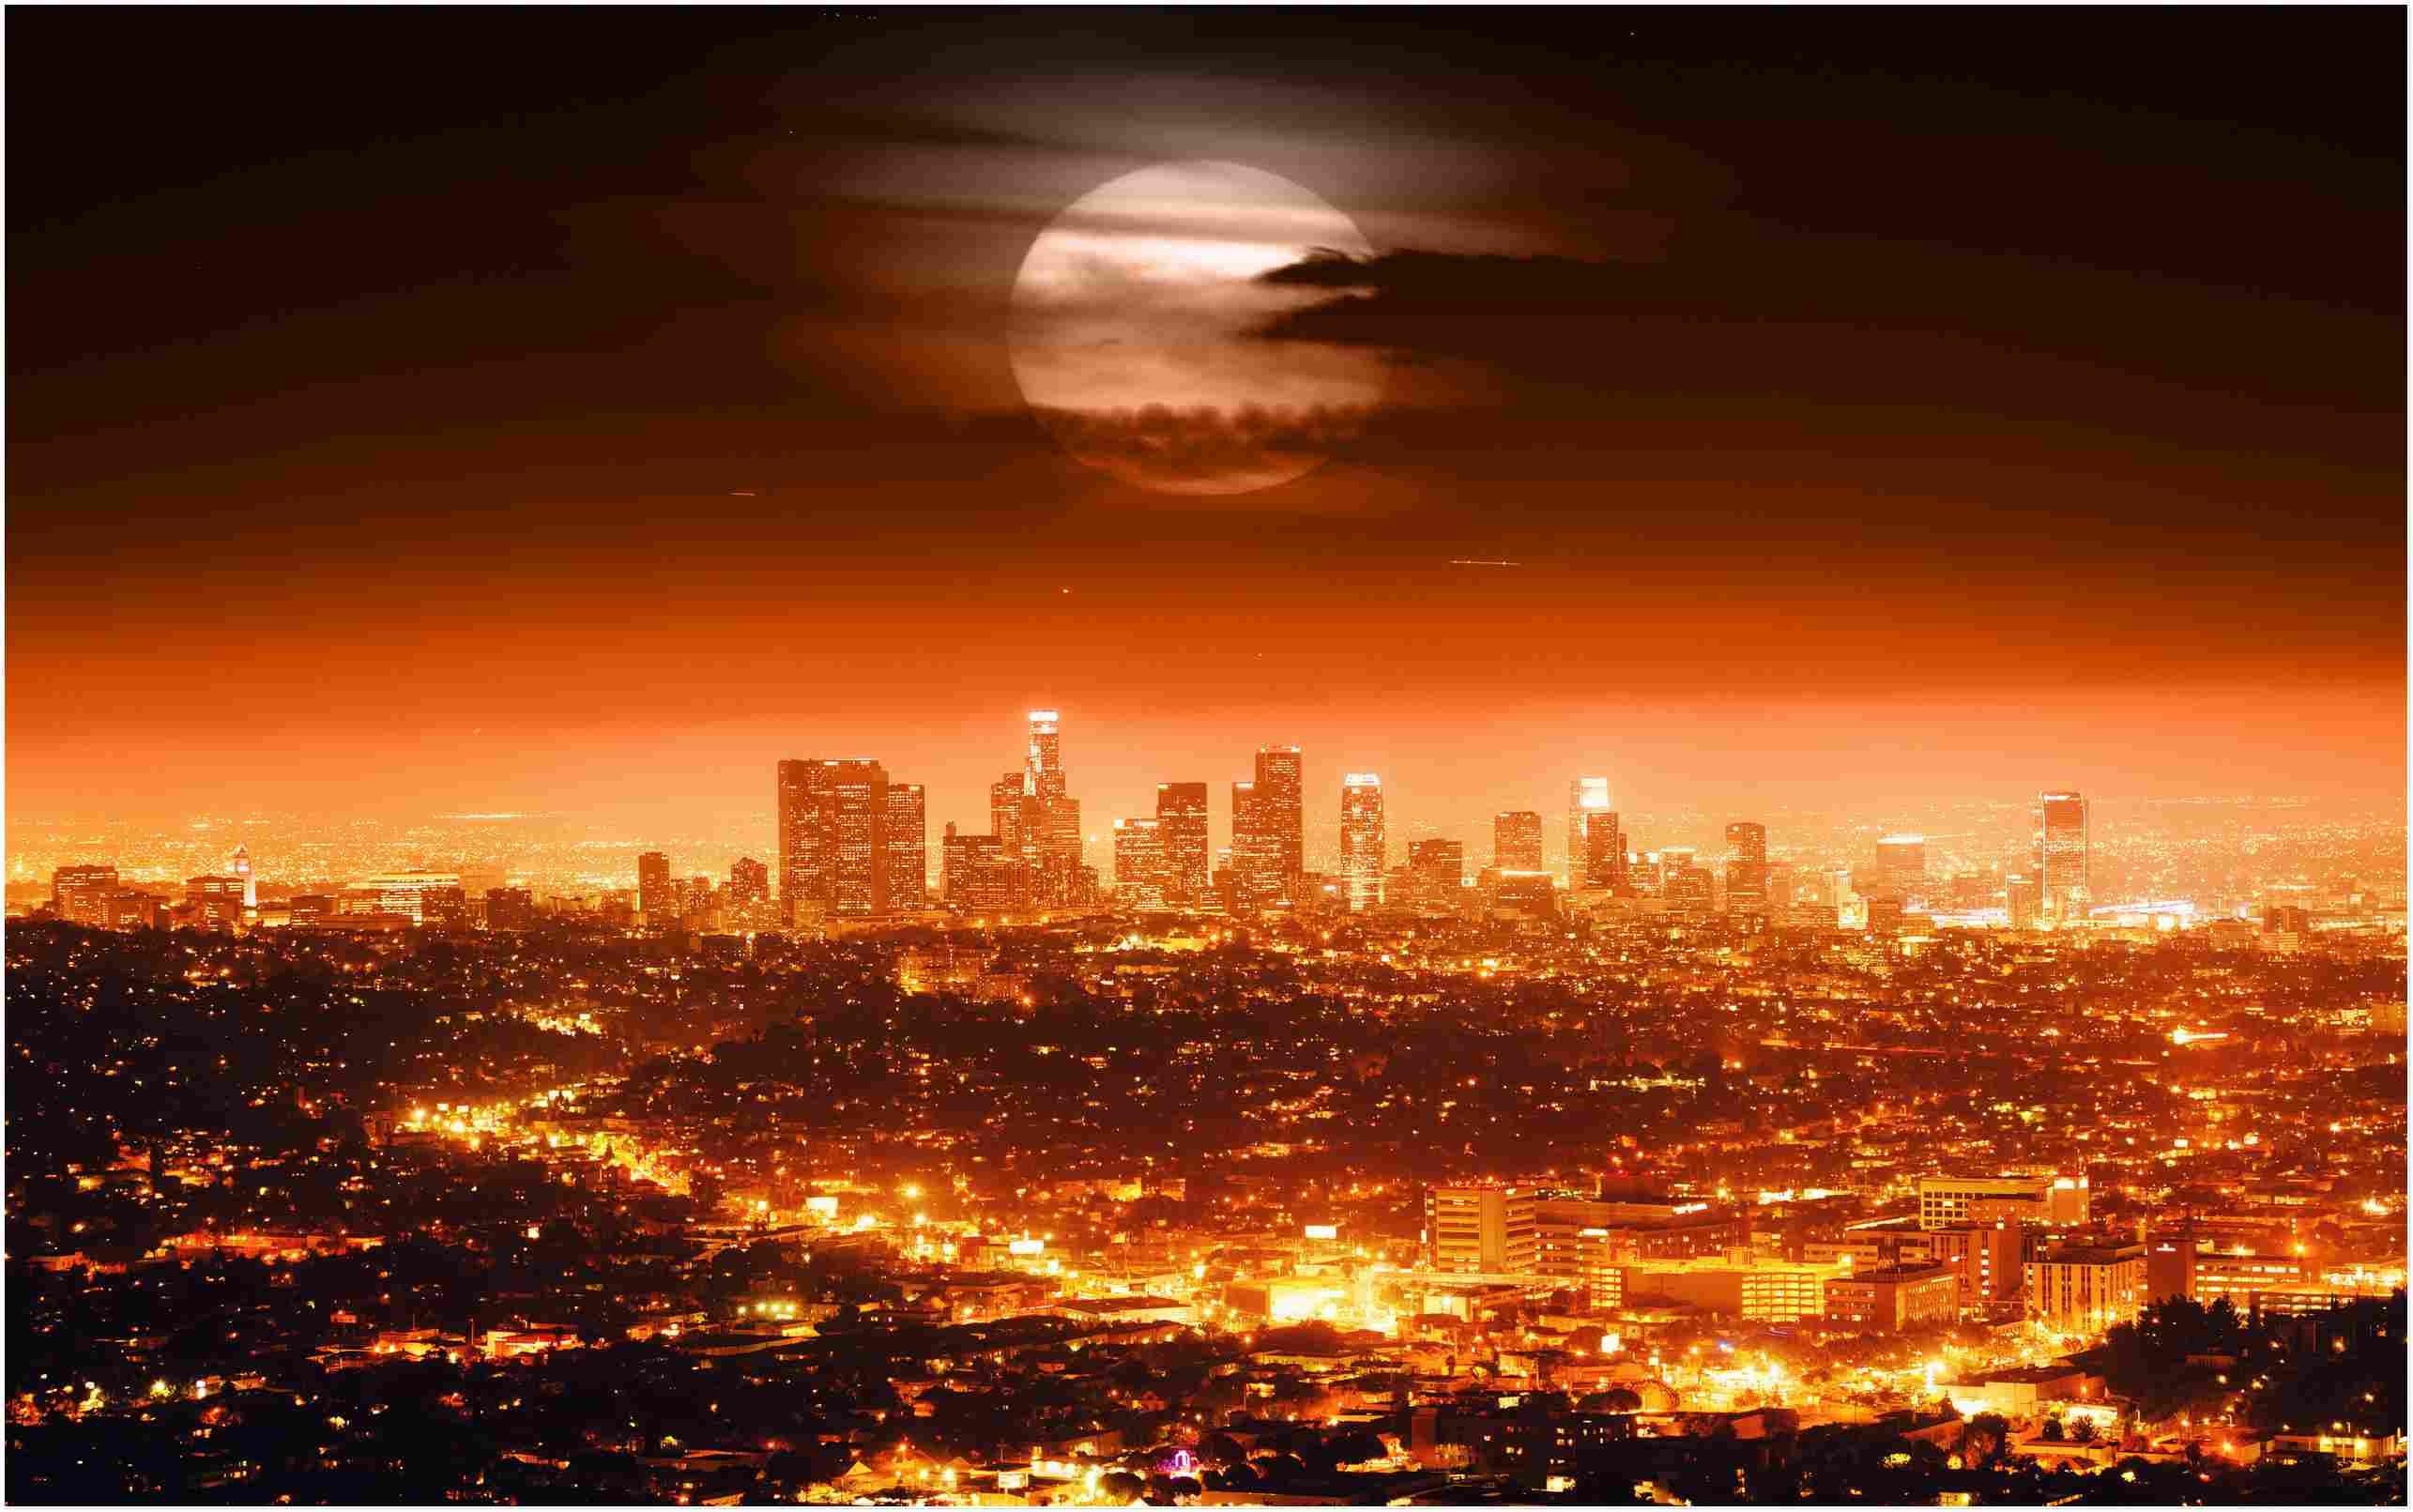 New 13 Los Angeles Wallpapers In 2020 Los Angeles Skyline Los Angeles Wallpaper Kids Art Wall Frames